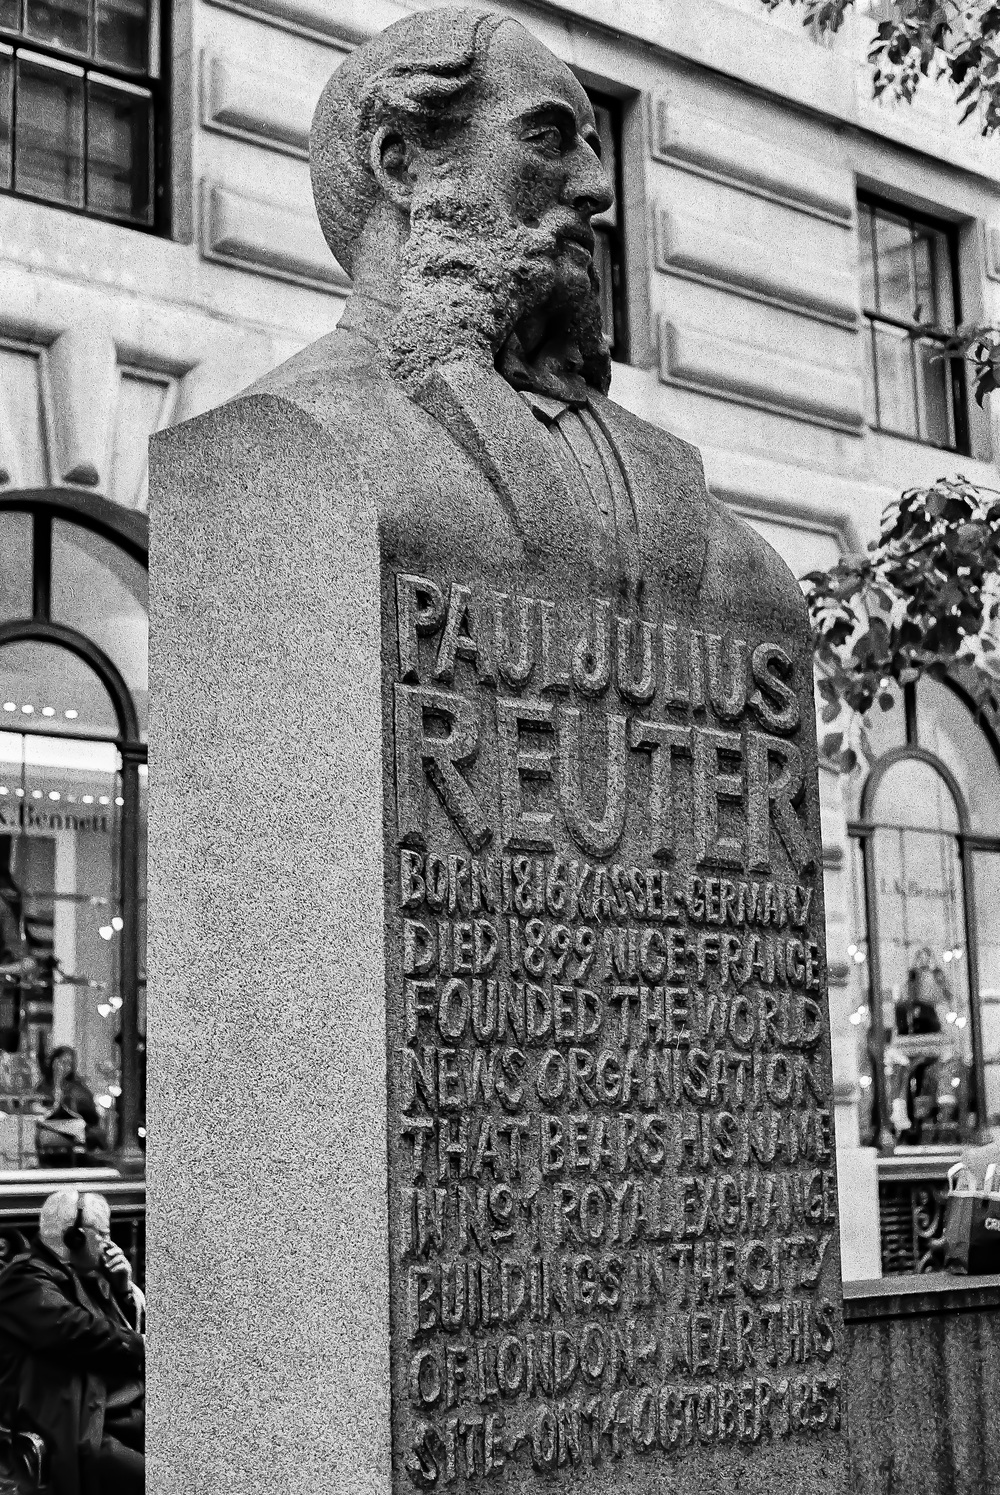 Paul Julius Reuter, father of news gathering, fittingly stands sentinel outside Leica